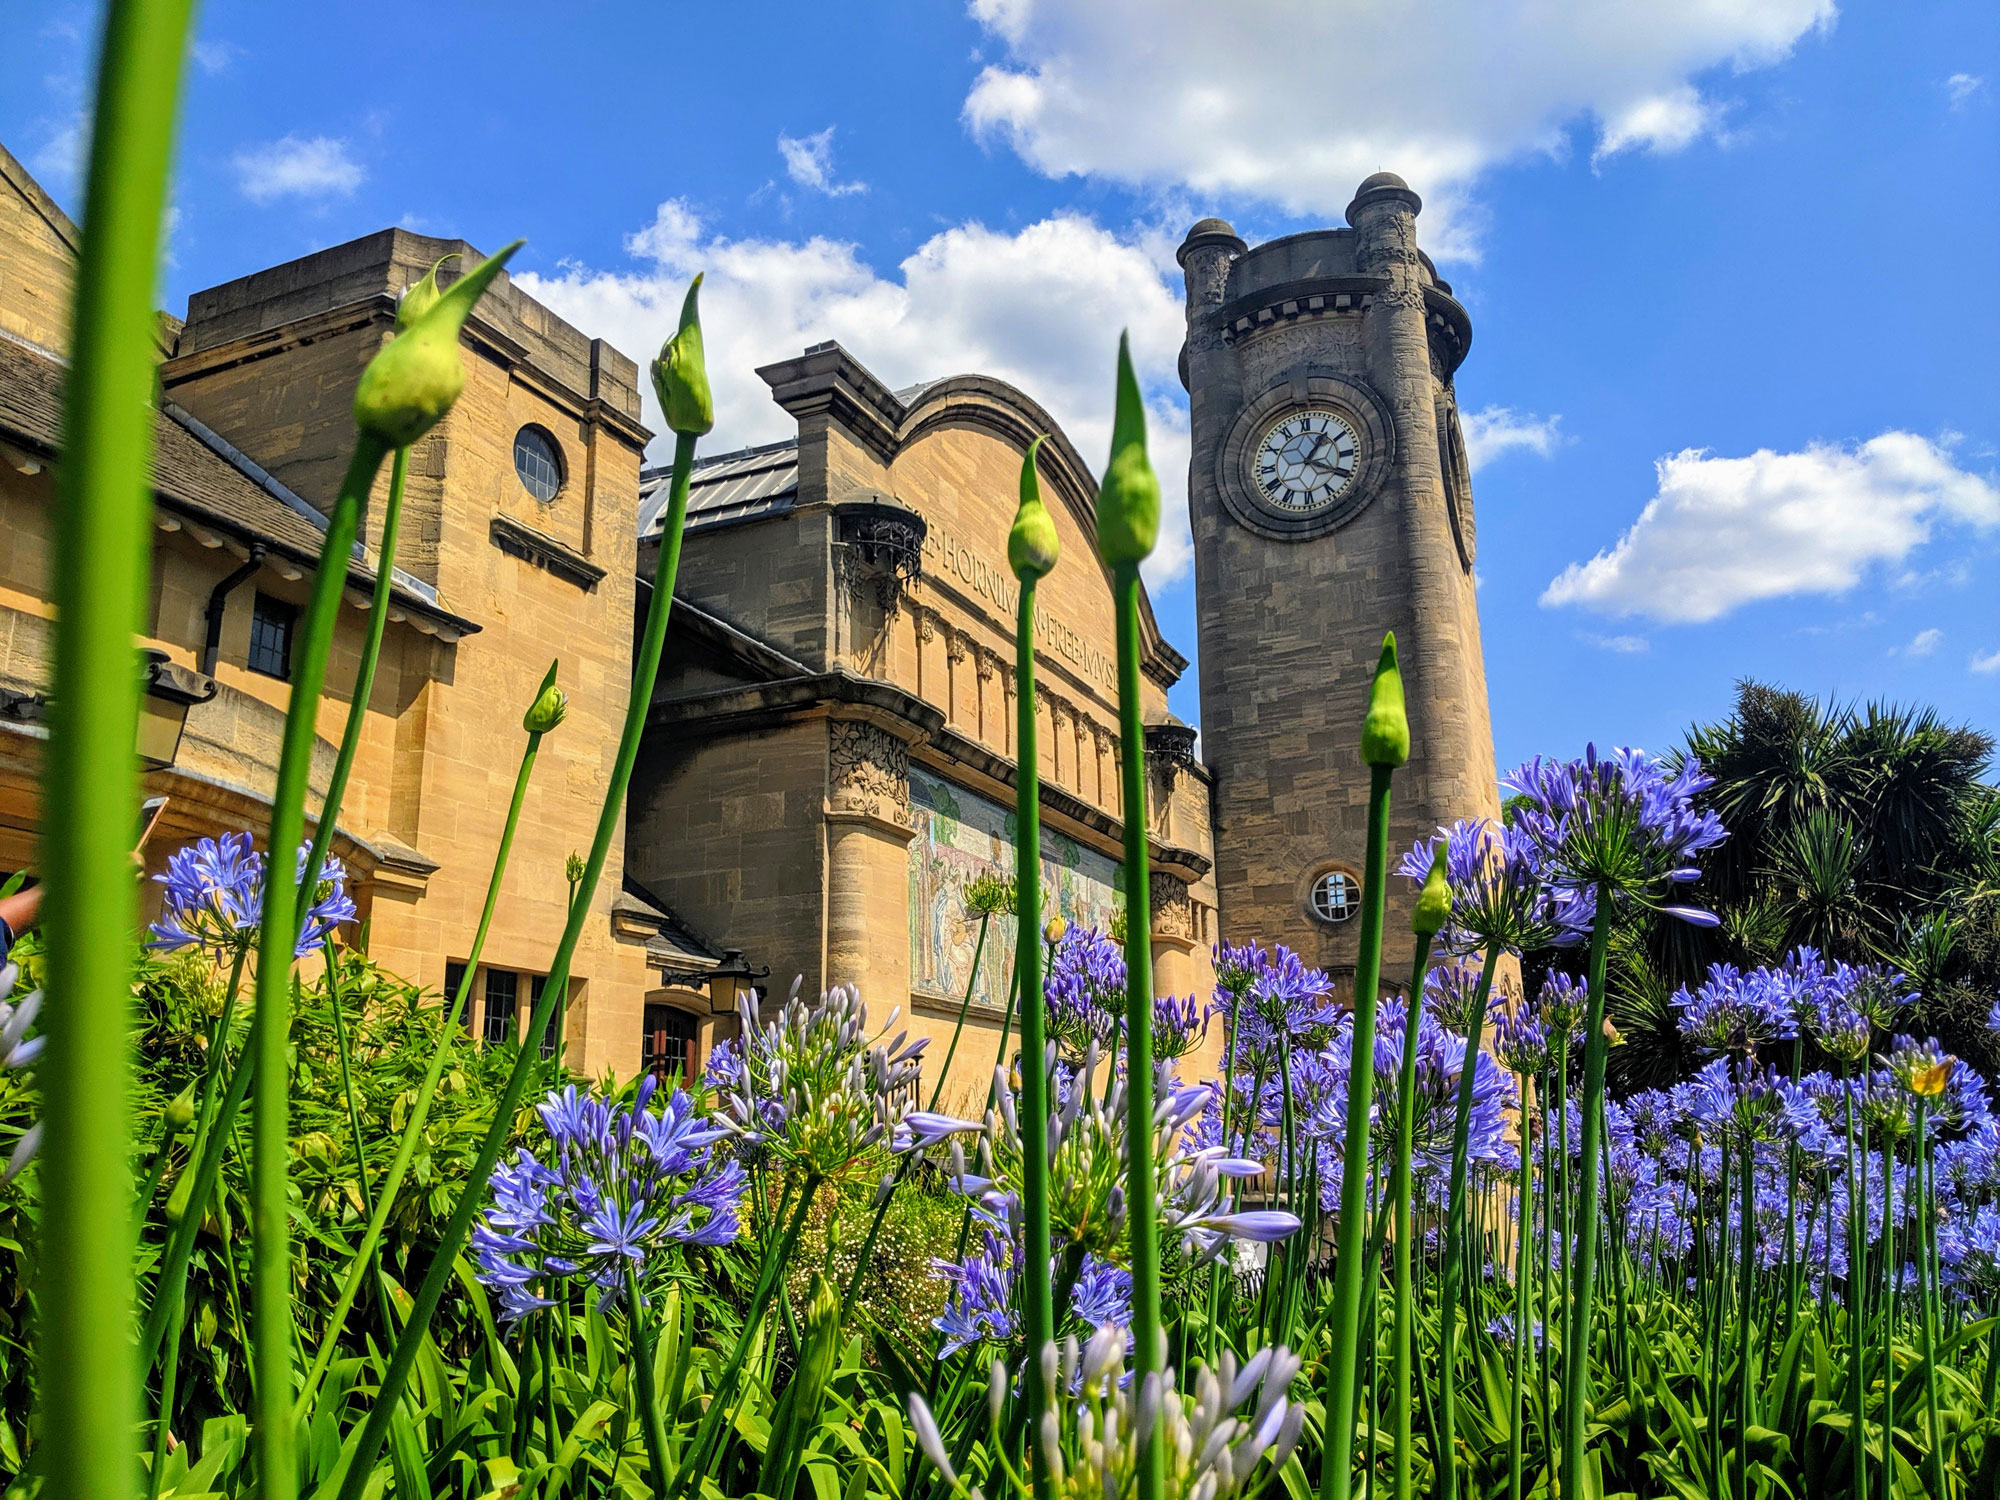 A pictures of the Horniman seen behind plants.